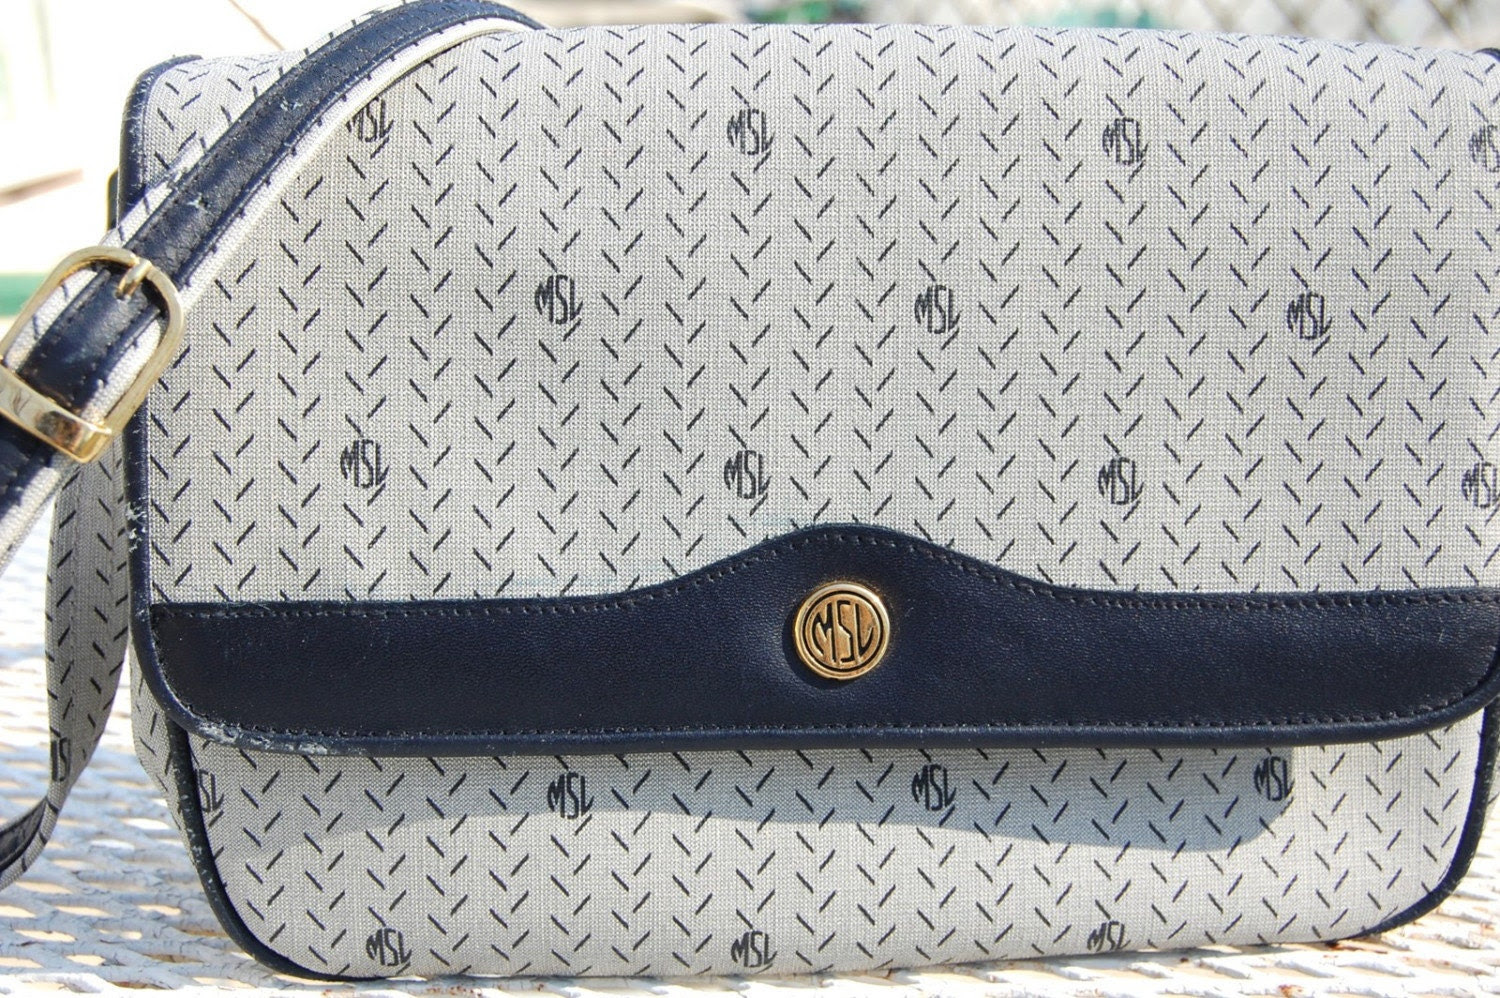 Vintage MONOGRAM Grey and Navy Blue MSL Purse SALE